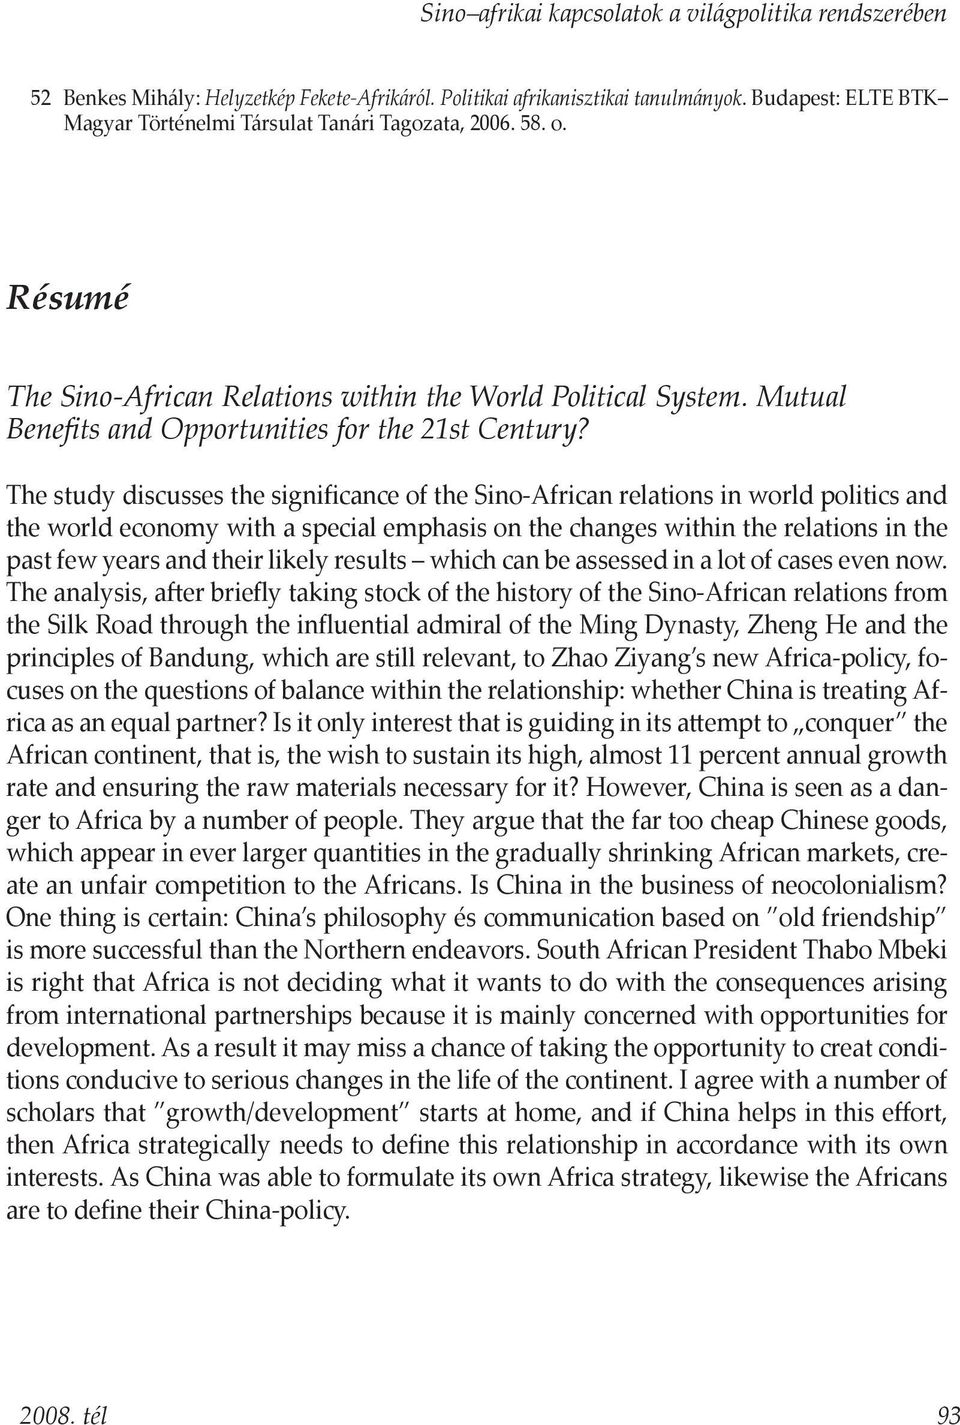 The study discusses the significance of the Sino-African relations in world politics and the world economy with a special emphasis on the changes within the relations in the past few years and their